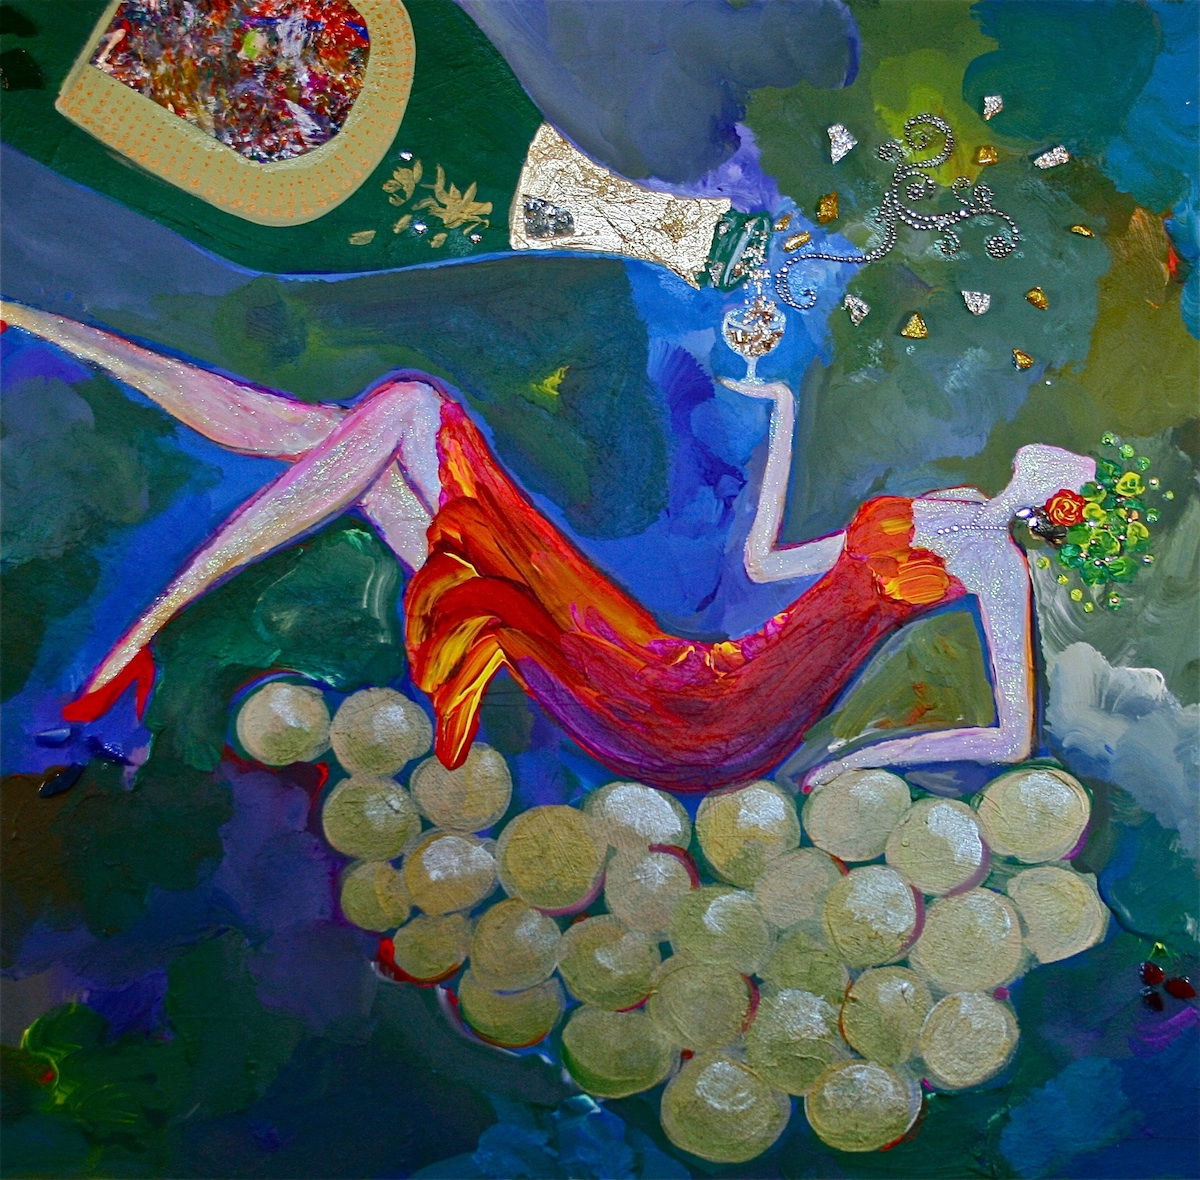 Goddess of Sparkling Wine - Painting by Stephanie Schlatter